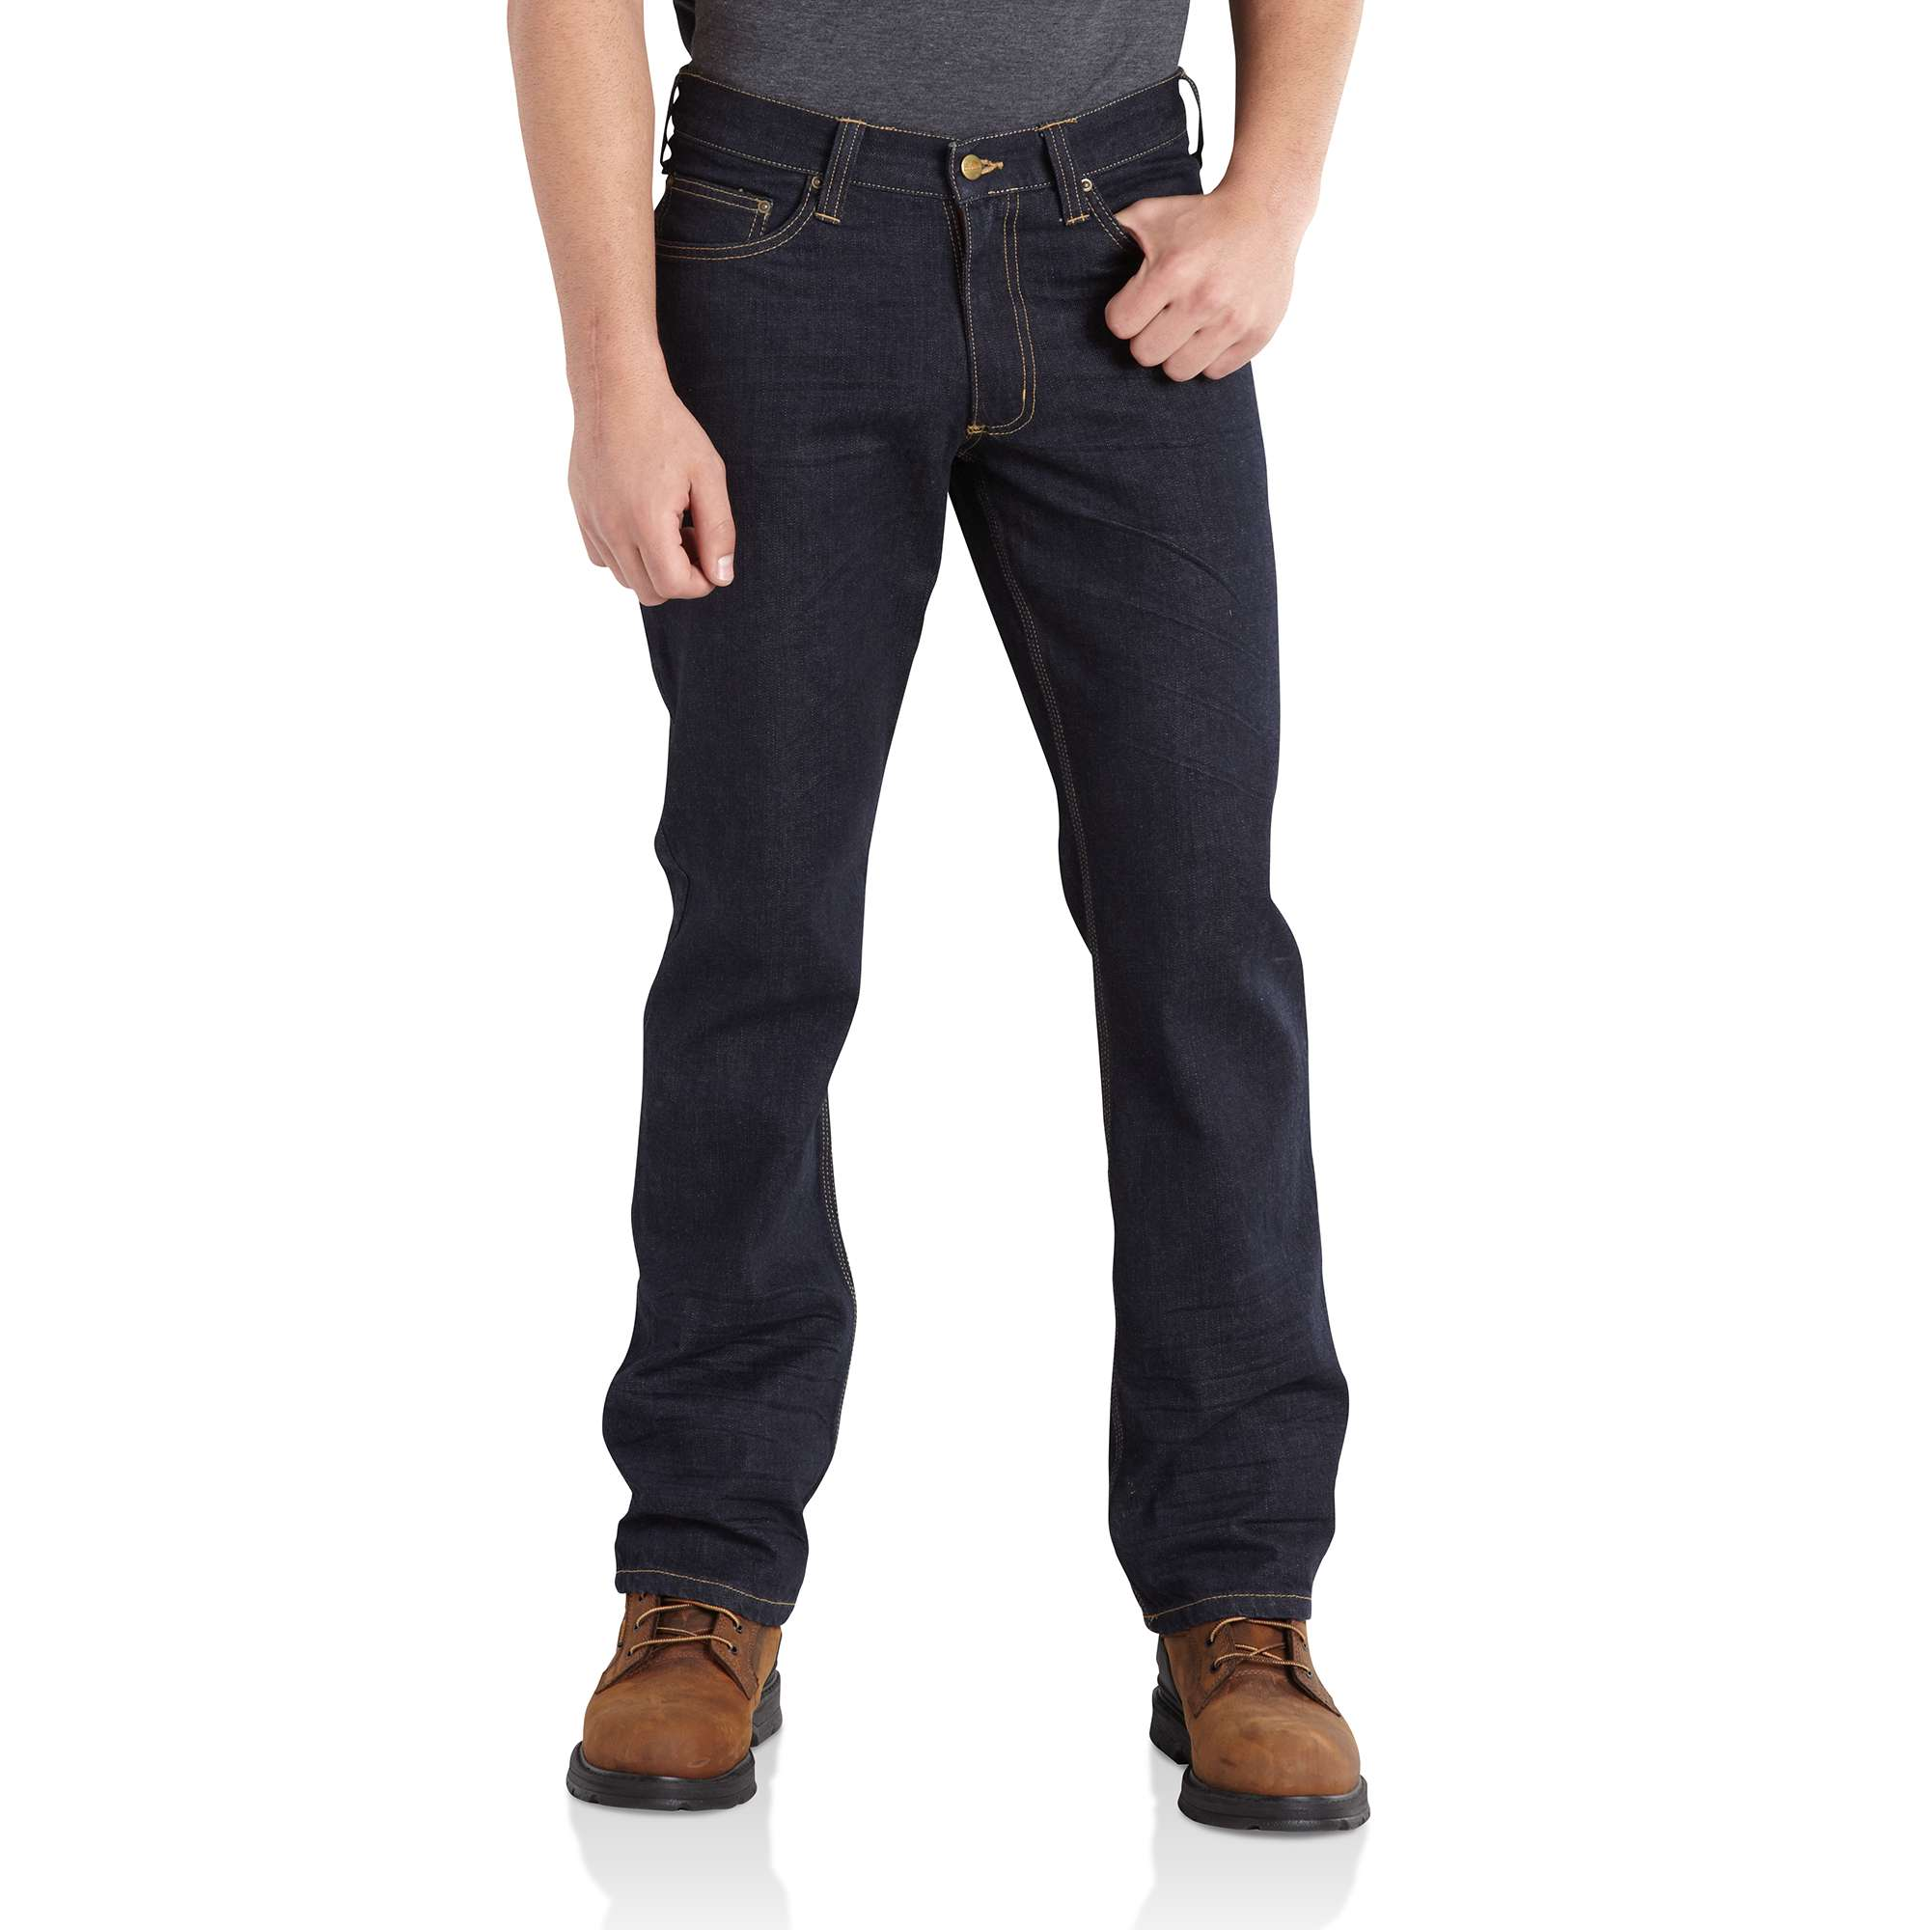 Carhartt Series 1889 Relaxed Fit Straight Leg Jean